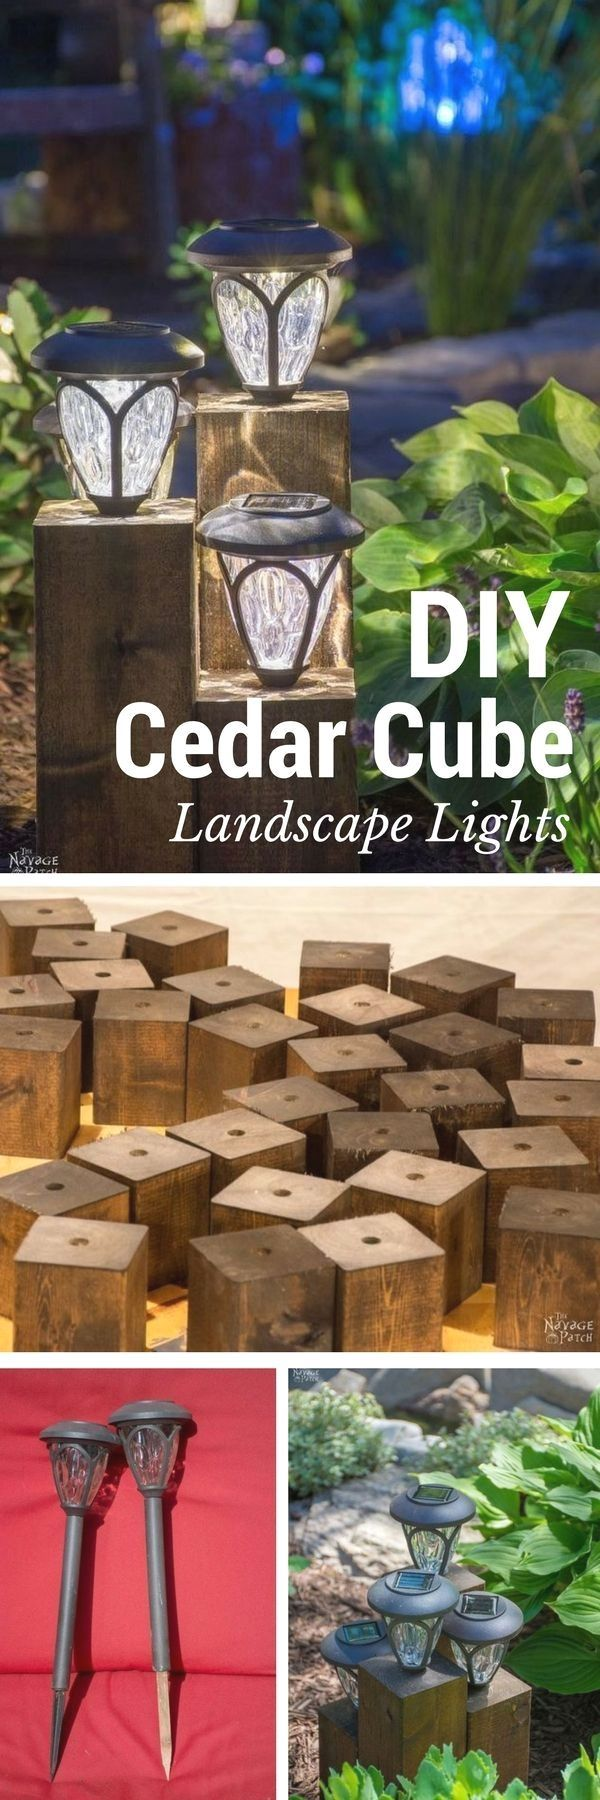 Solarlampen Terrasse Check Out The Tutorial On How To Make Easy Diy Cedar Outdoor